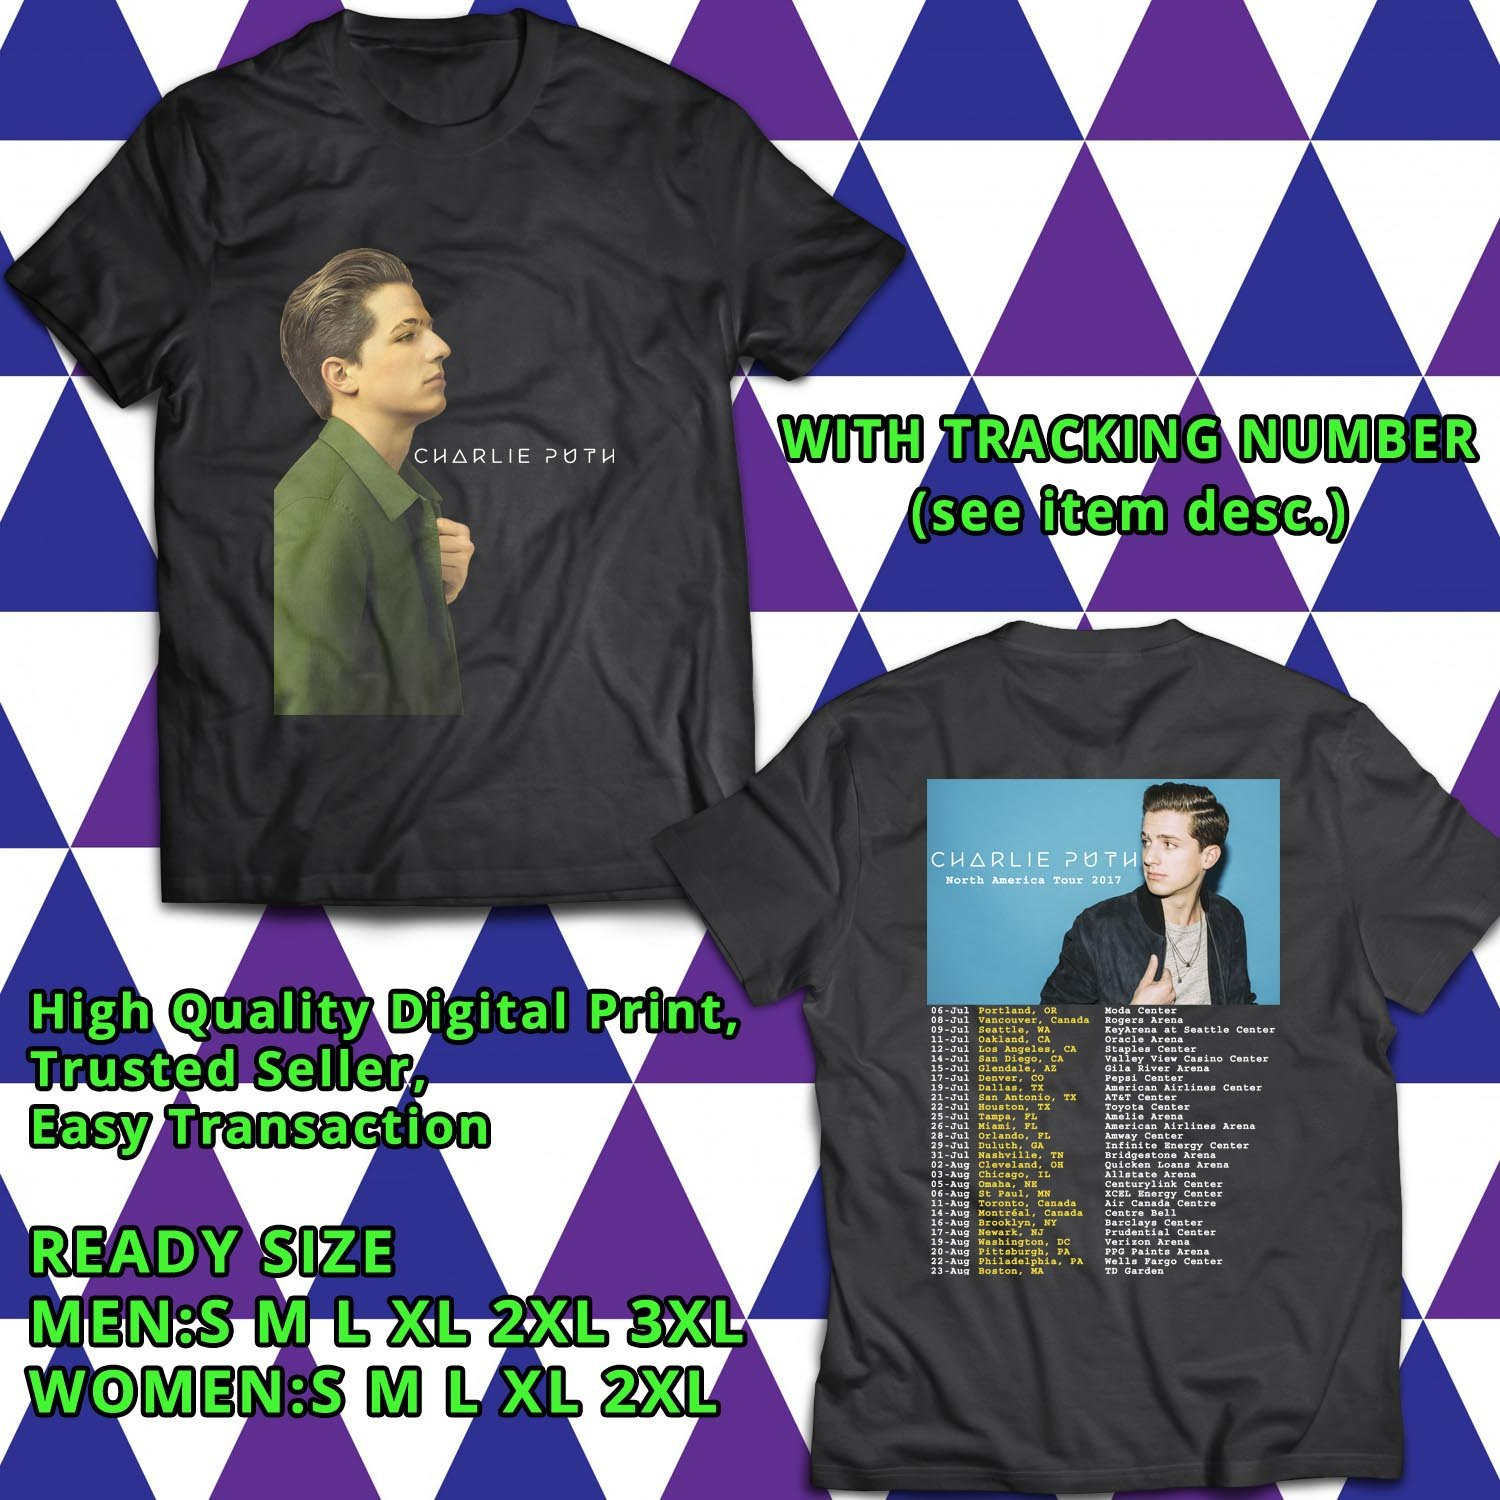 HITS CHARLIE PUTH NORTH AMERICA TOUR 2017 BLACK TEE'S 2SIDE MAN WOMEN ASTR 554